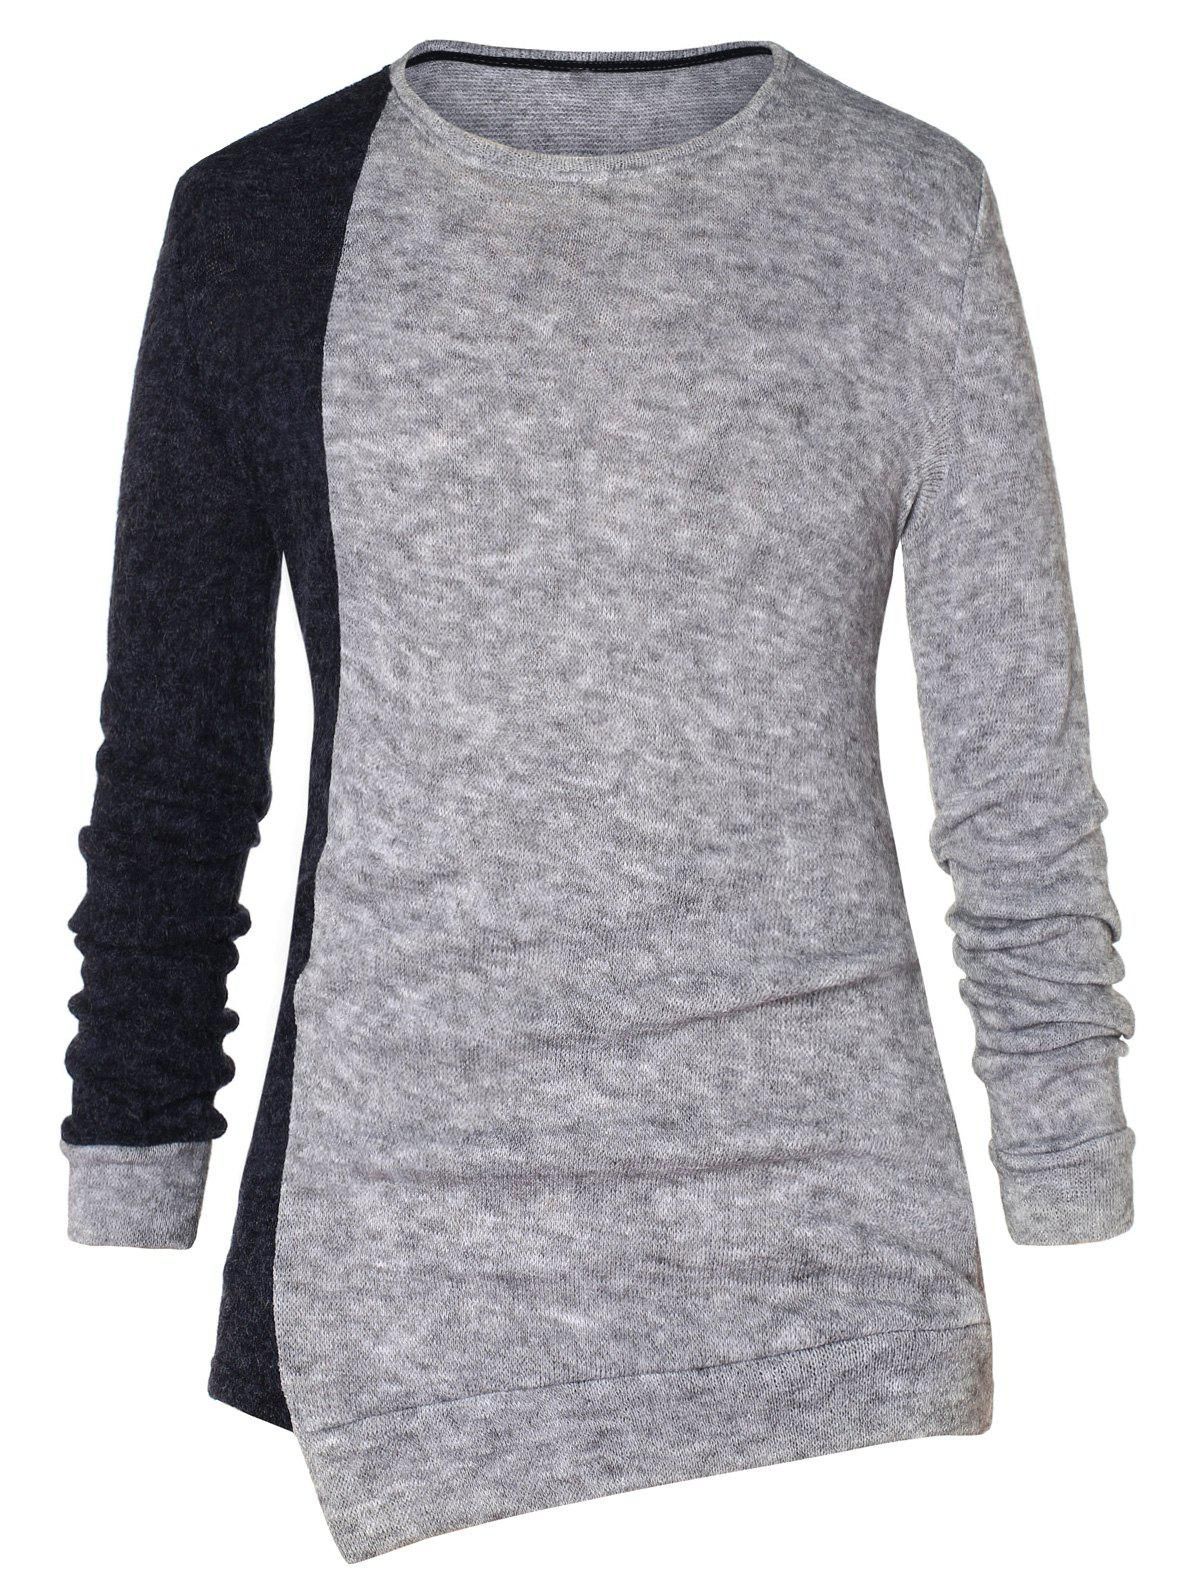 Asymmetric Color Block Pullover Sweater - CARBON GRAY 2XL